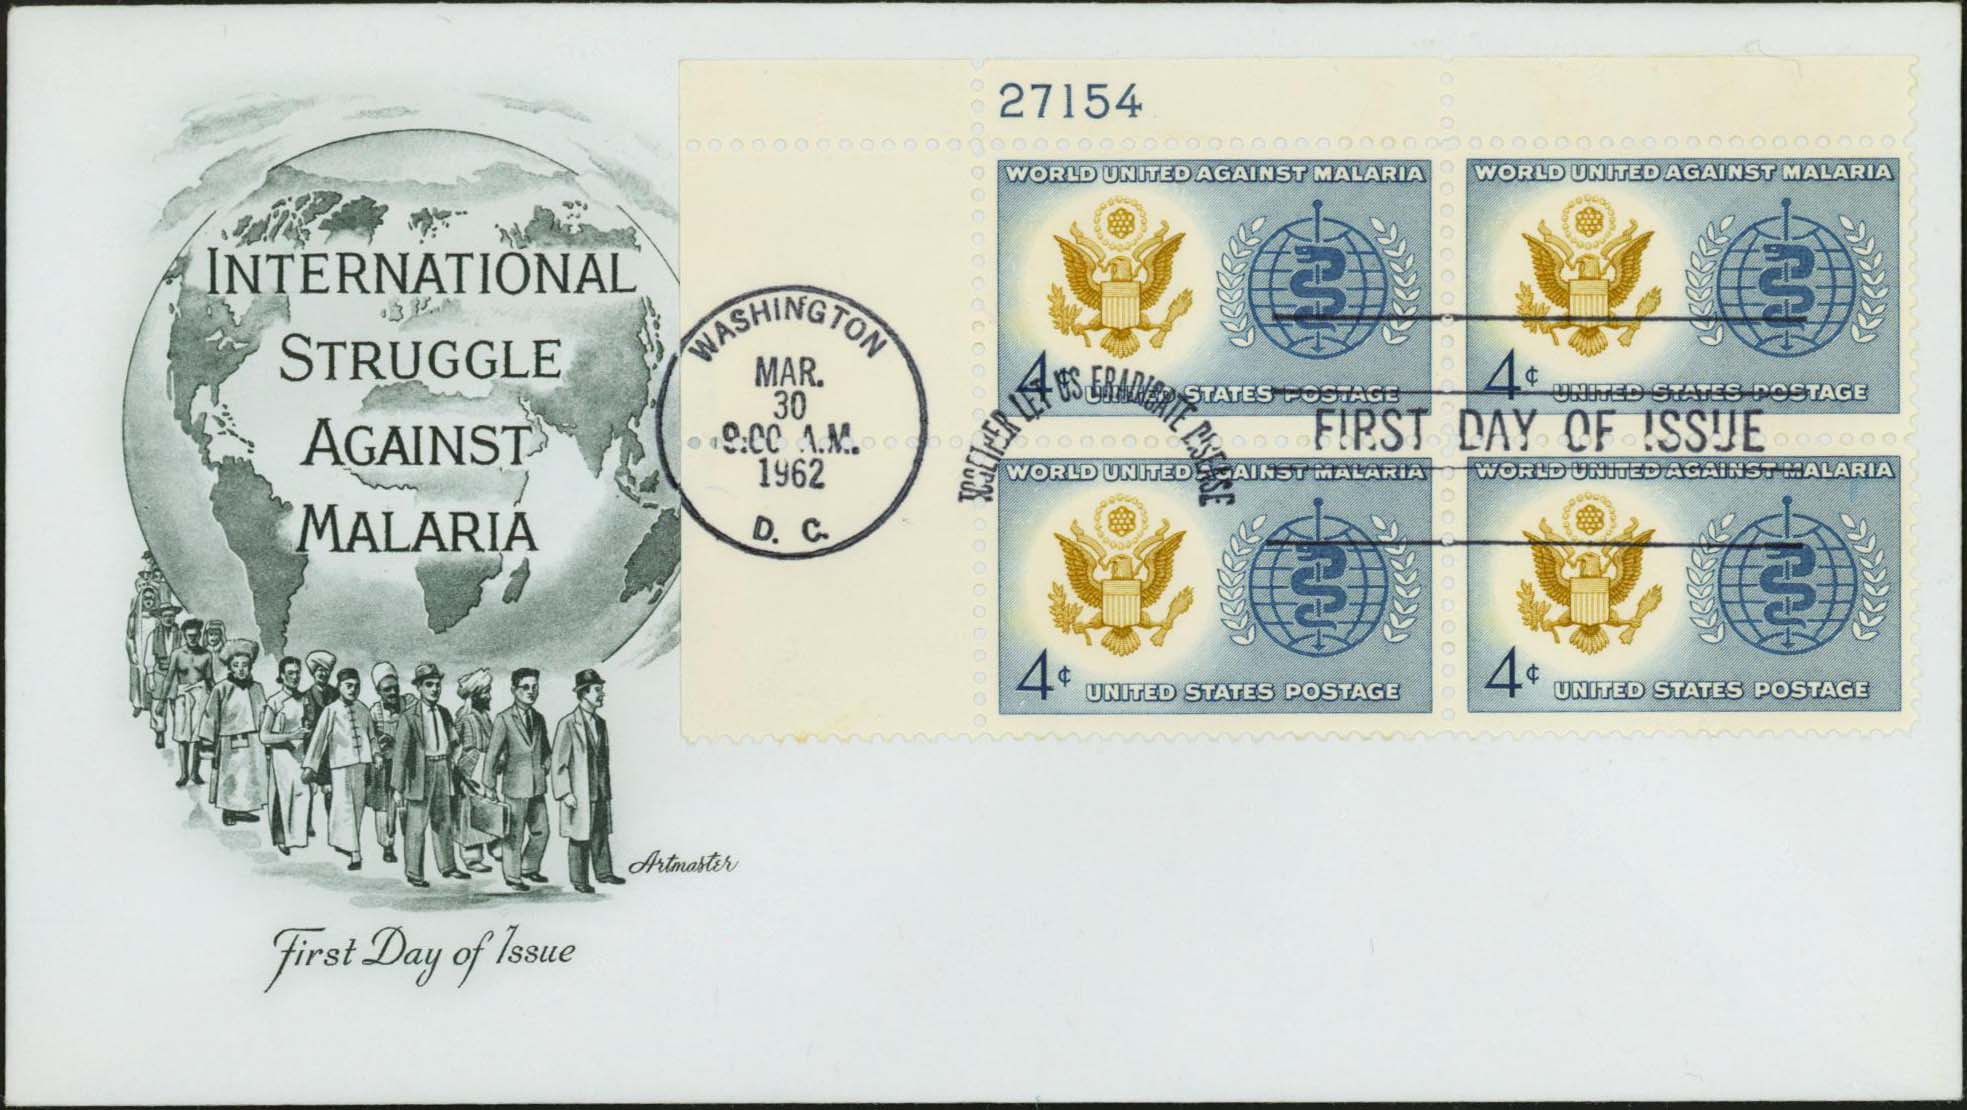 United States Scott 1194 On FDC With Artmaster Cachet (Plate Block 21754 Upper Left)